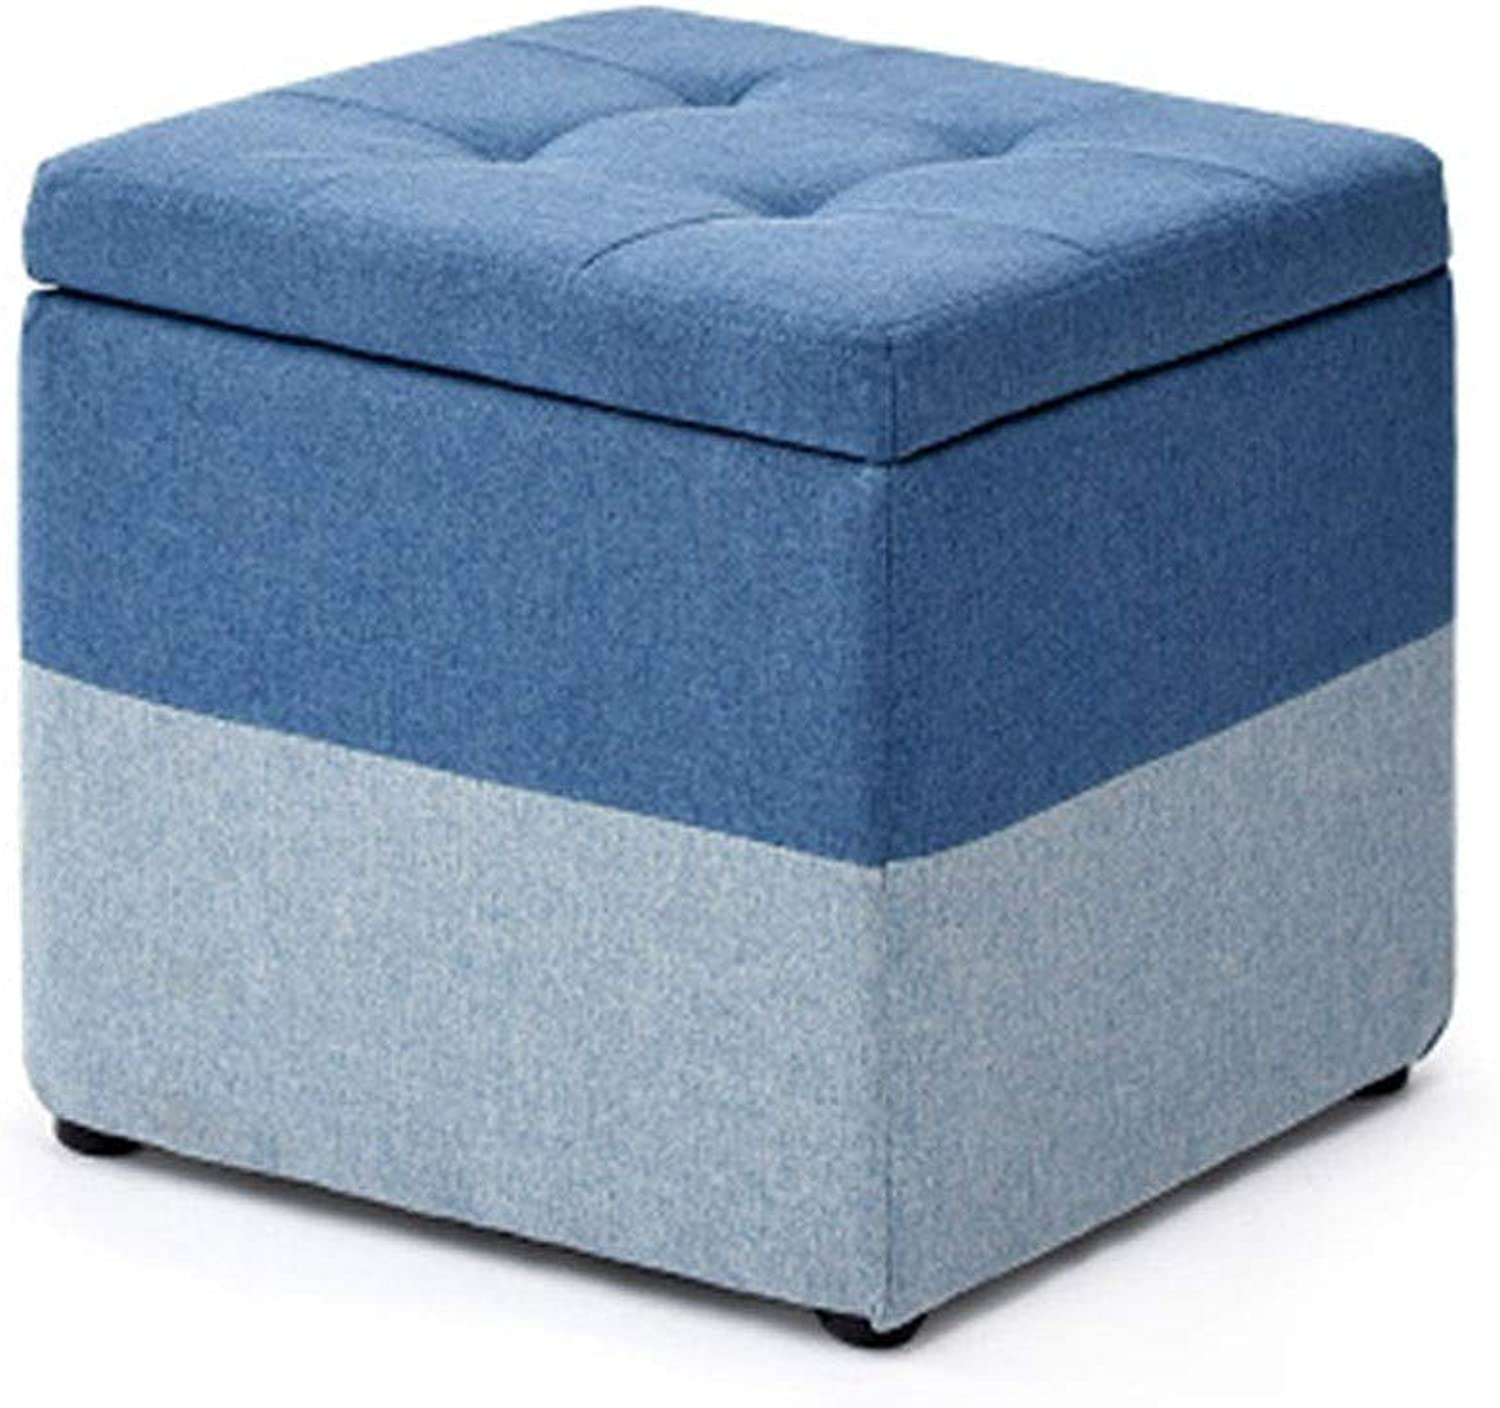 WENJUN Small Stool Footstool, Home Creative Storage Storage Stool Fabric Sofa Square Stool 40  40  40cm 2 colors (color   bluee)